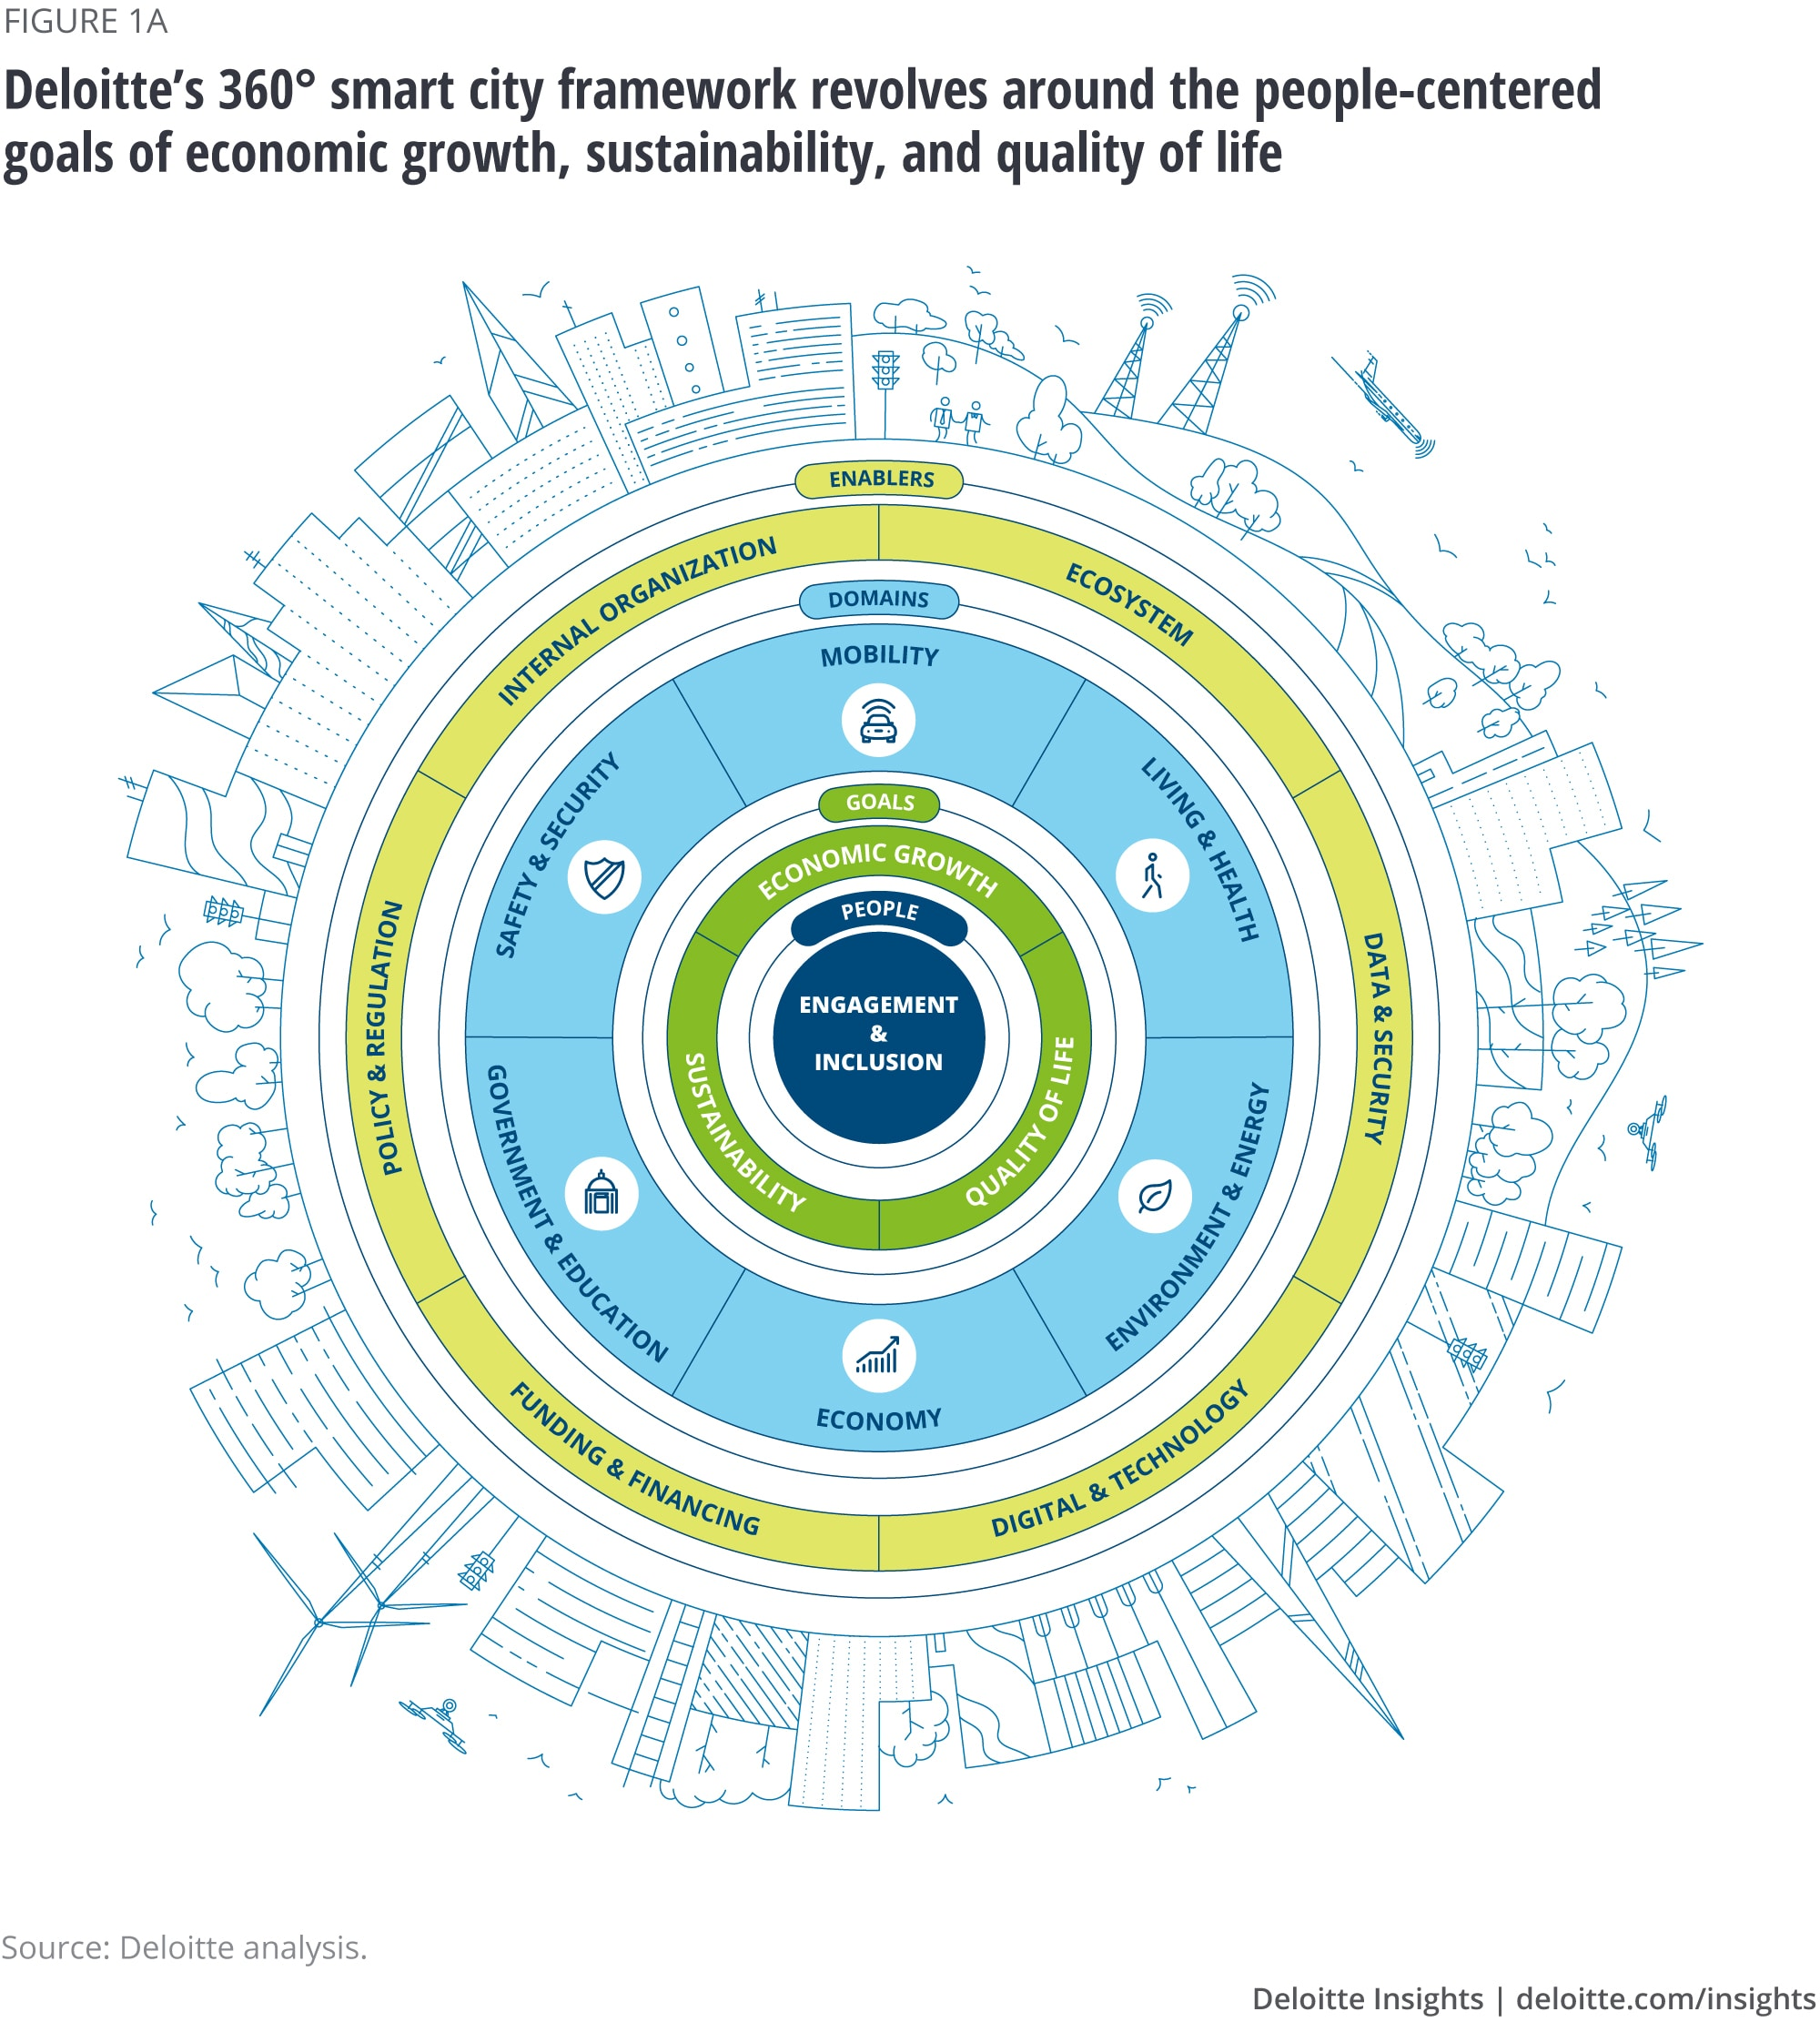 Deloitte's 360° smart city framework revolves around the people-centered goals of economic growth, sustainability, and quality of life